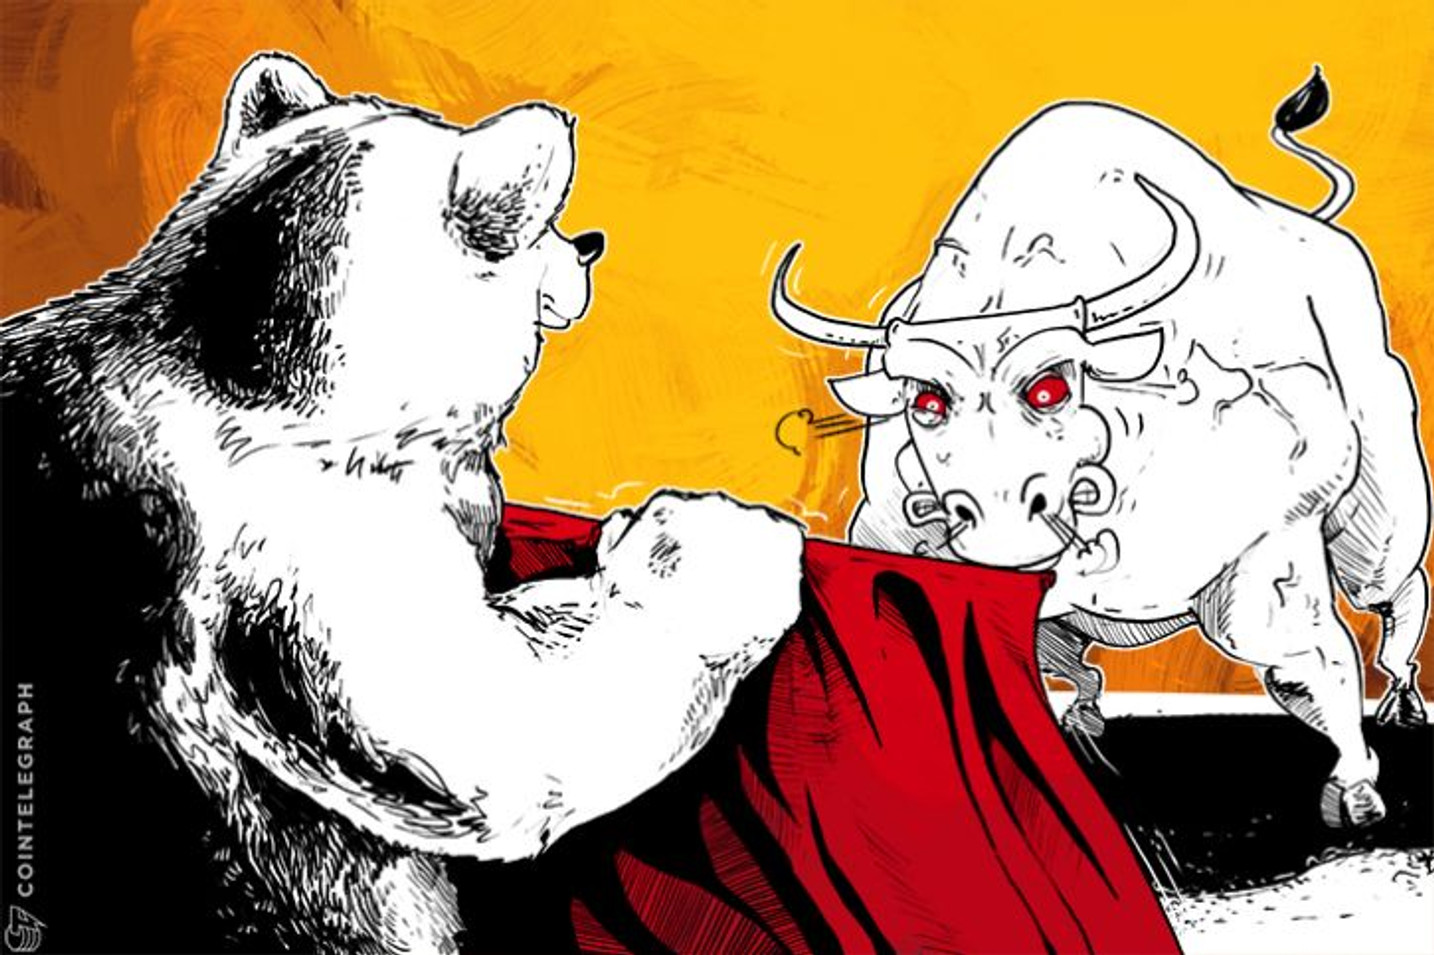 Bitcoin Price Analysis: Bull Trap? (Week of October 19)